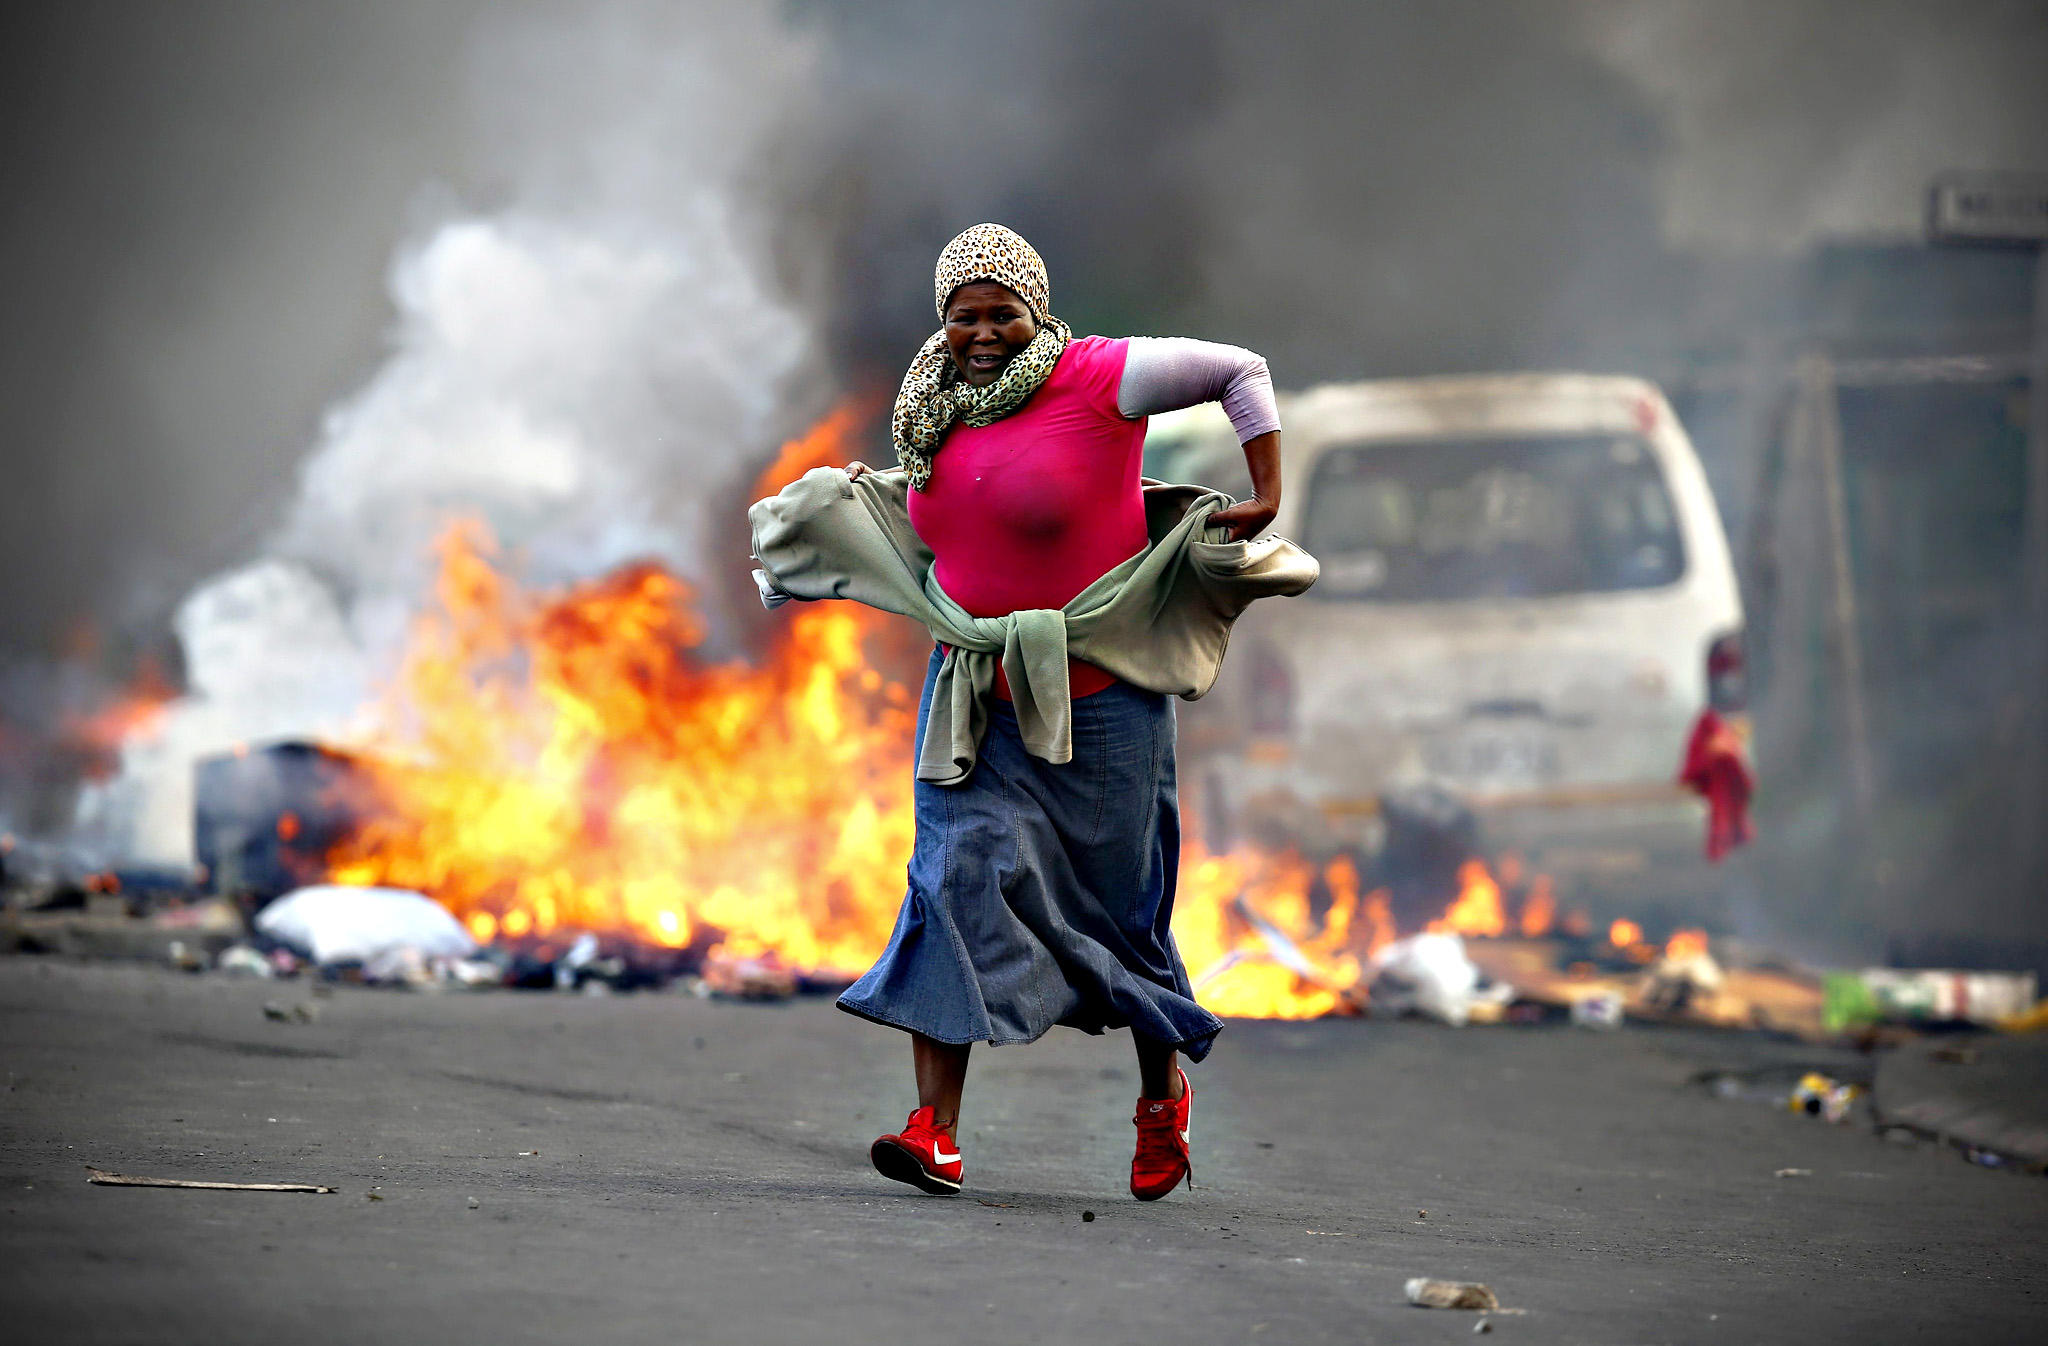 A South African resident of Masiphumelele runs past a burning barricade during a protest against the lack of policing in Masiphumelele, Cape Town, South Africa,  29 September 2015. According to local reports the protest was sparked by the court appearance 29 September of some residents arrested in connection with vigilante killings. The area has been volatile for weeks with community members angered at the lack of policing in the impoverished area. Two weeks ago suspected criminals were killed by a mob accused of being behind the death and rape of 15 year old Amani Pula